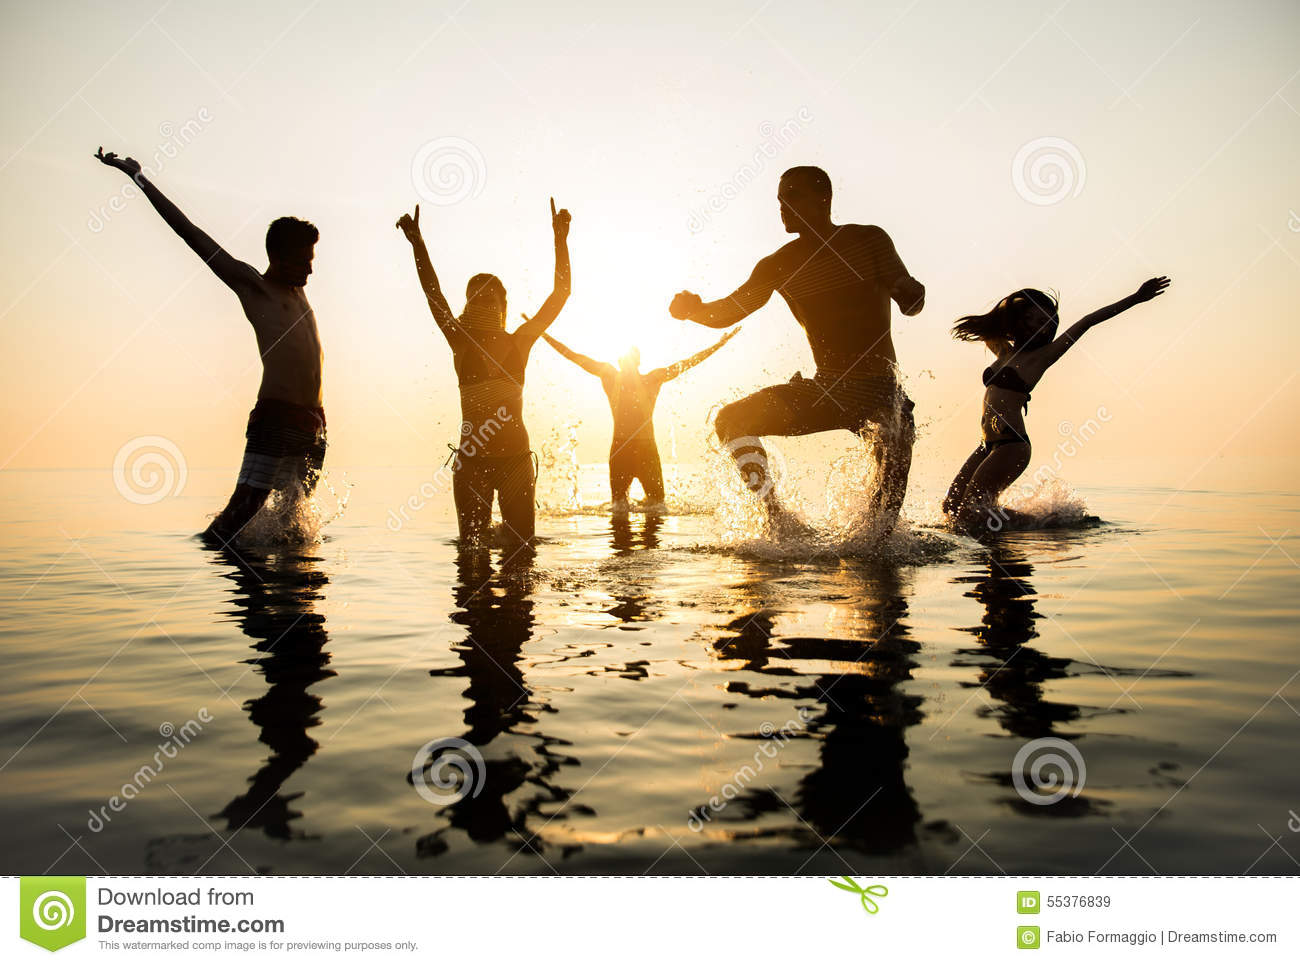 silhouettes-happy-people-group-friends-jumping-to-water-sunset-active-dancing-having-fun-beach-vacation-55376839.jpg